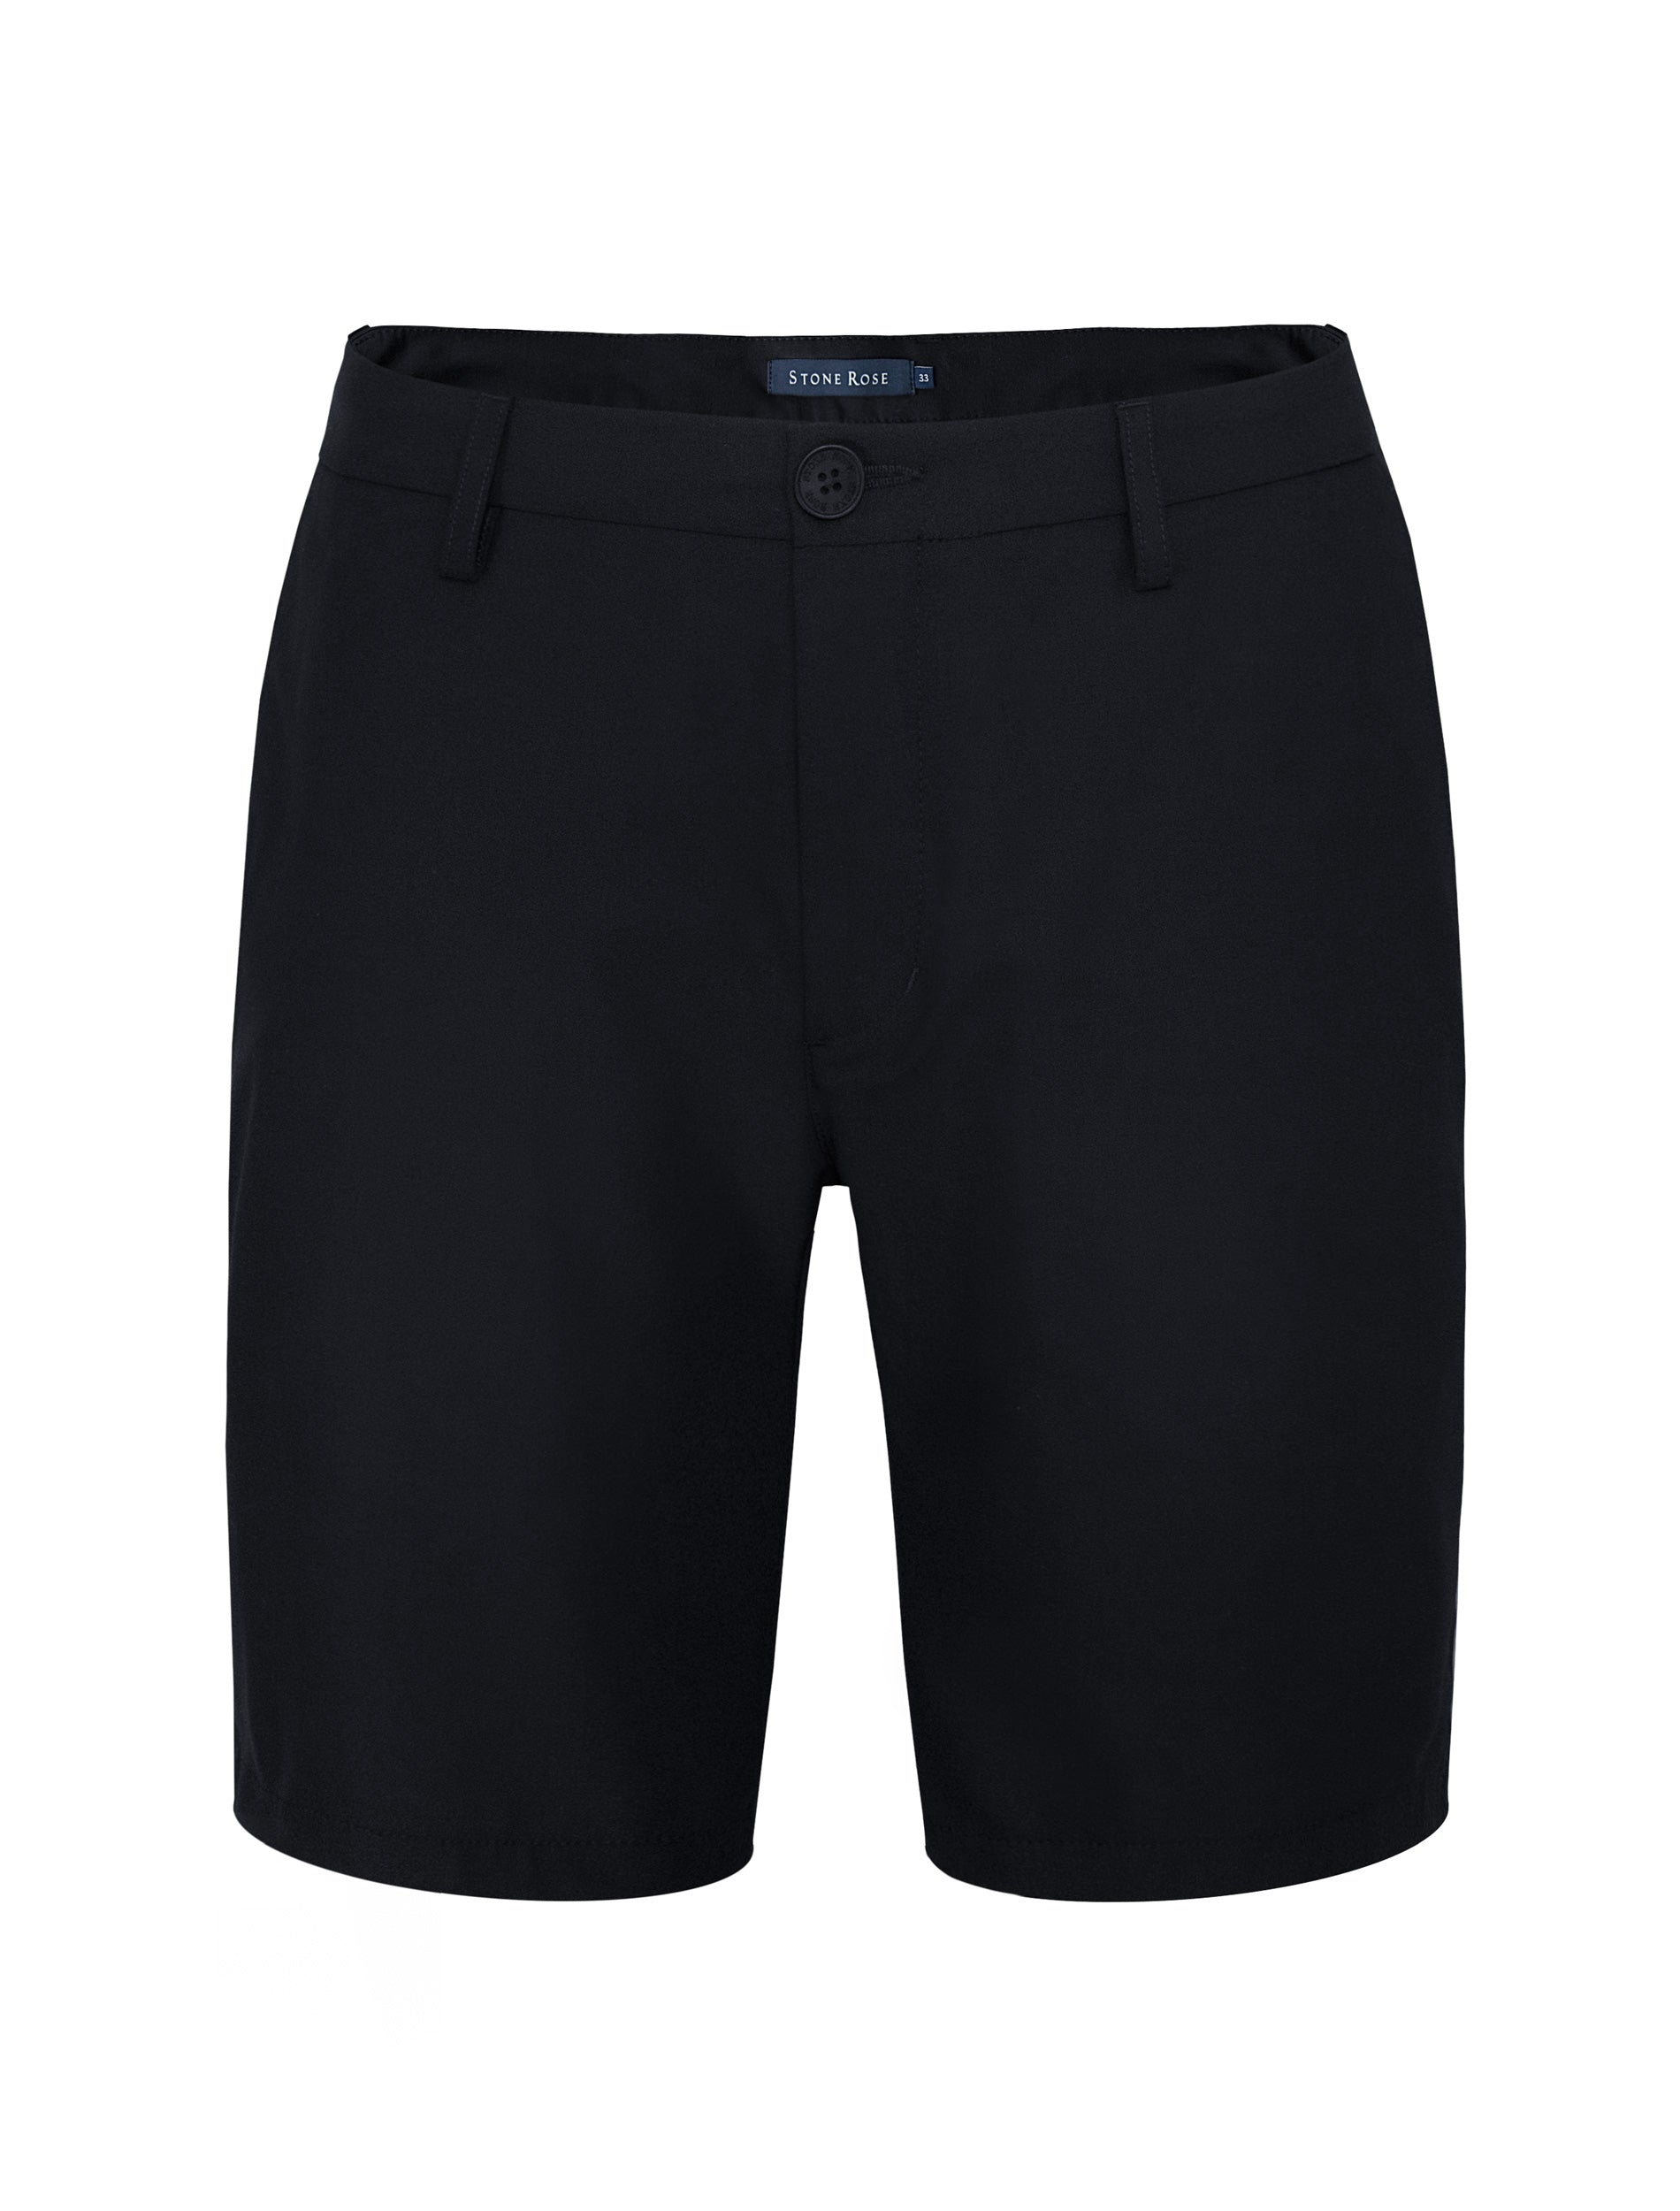 Black Stretch Performance Shorts